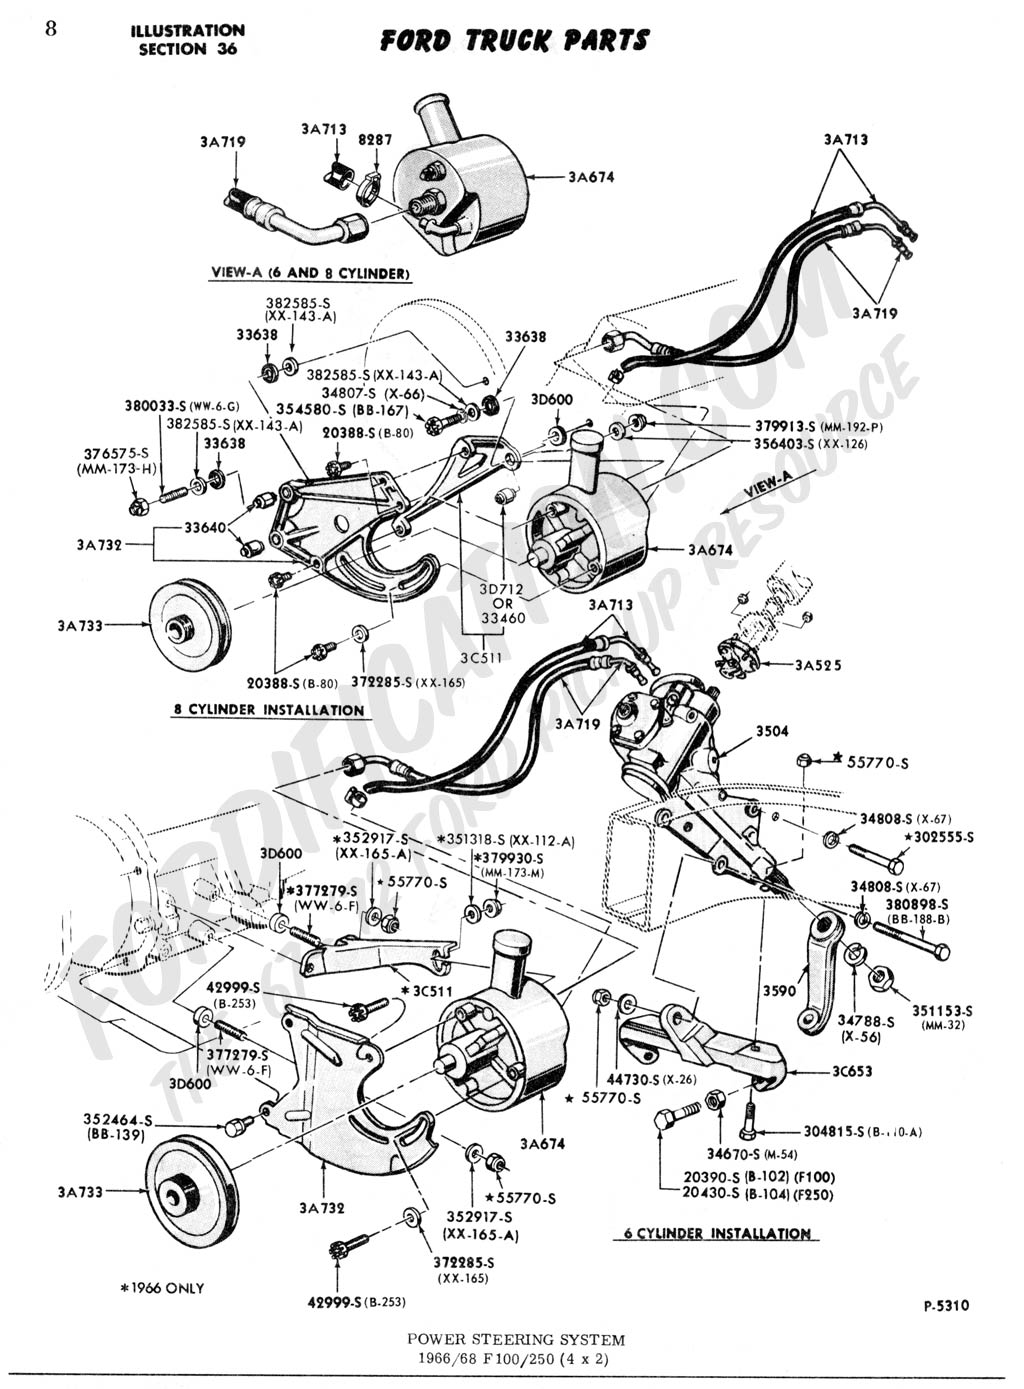 2011 chevy silverado radio wiring harness diagram 2011 discover kenworth steering diagram